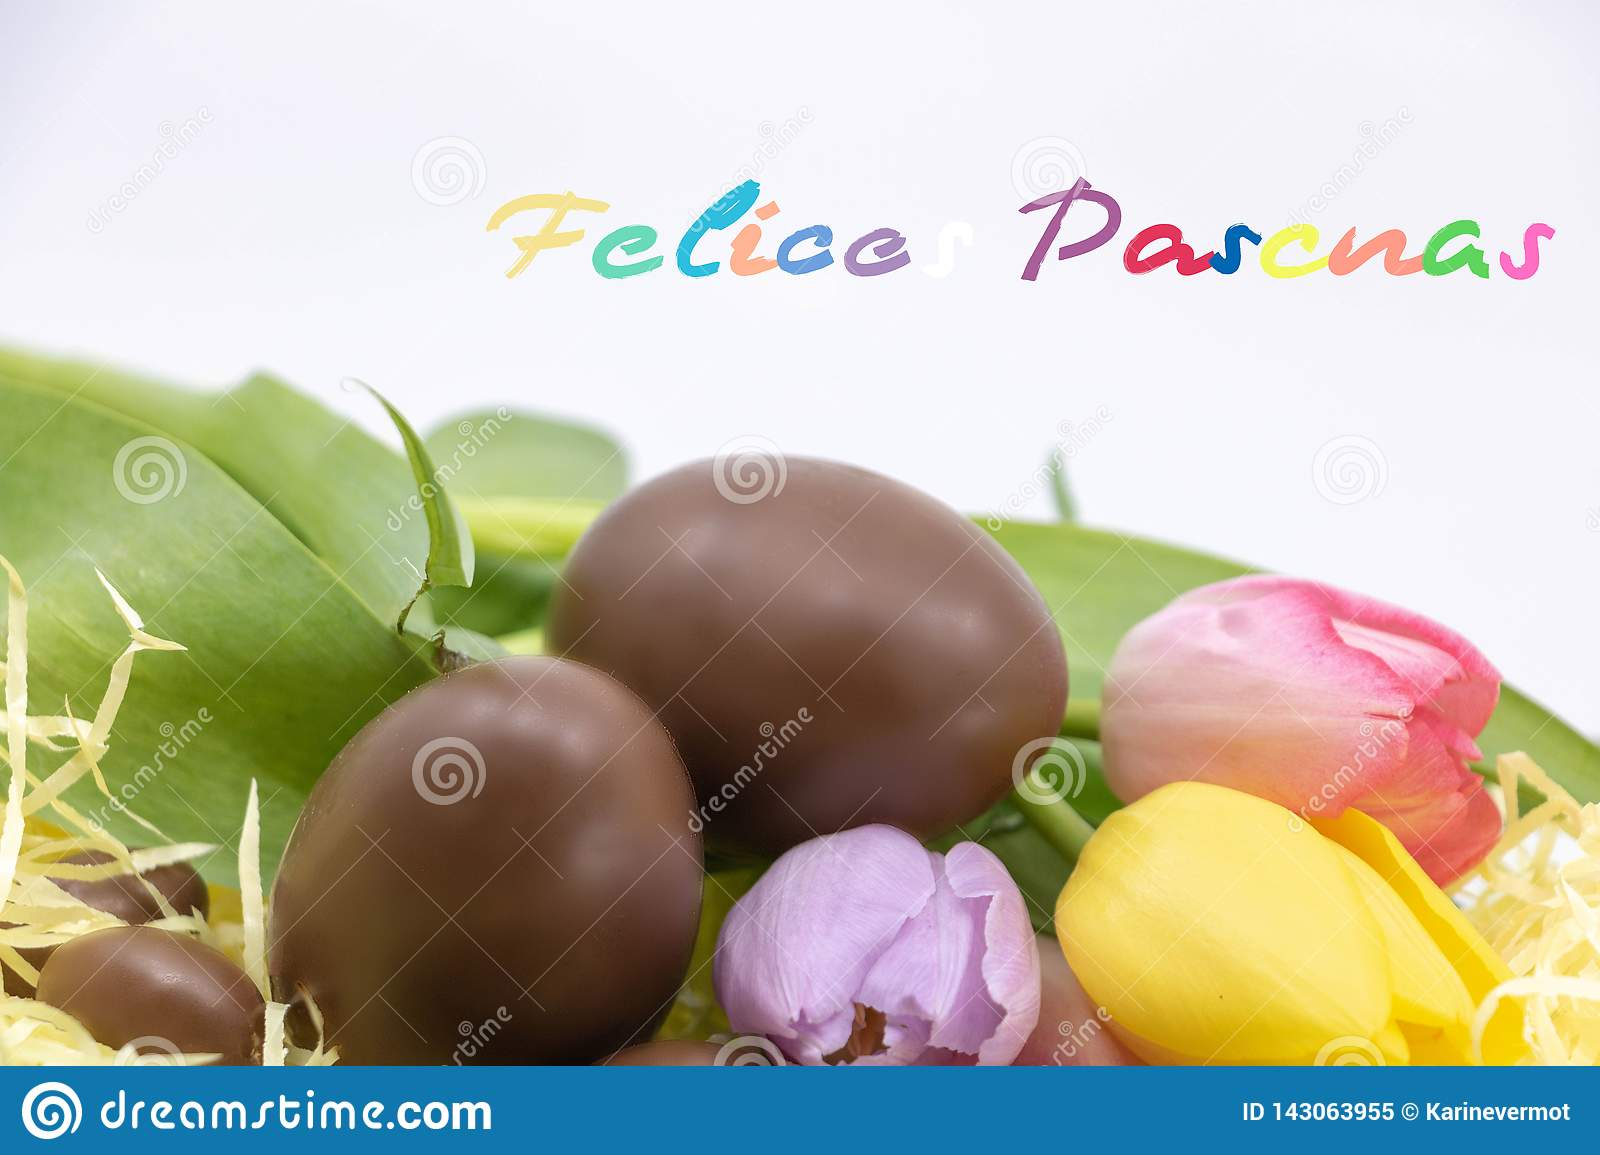 Spanish text Felices pascuas is Happy Easter written in Spanish very colorful to celebrate Easter